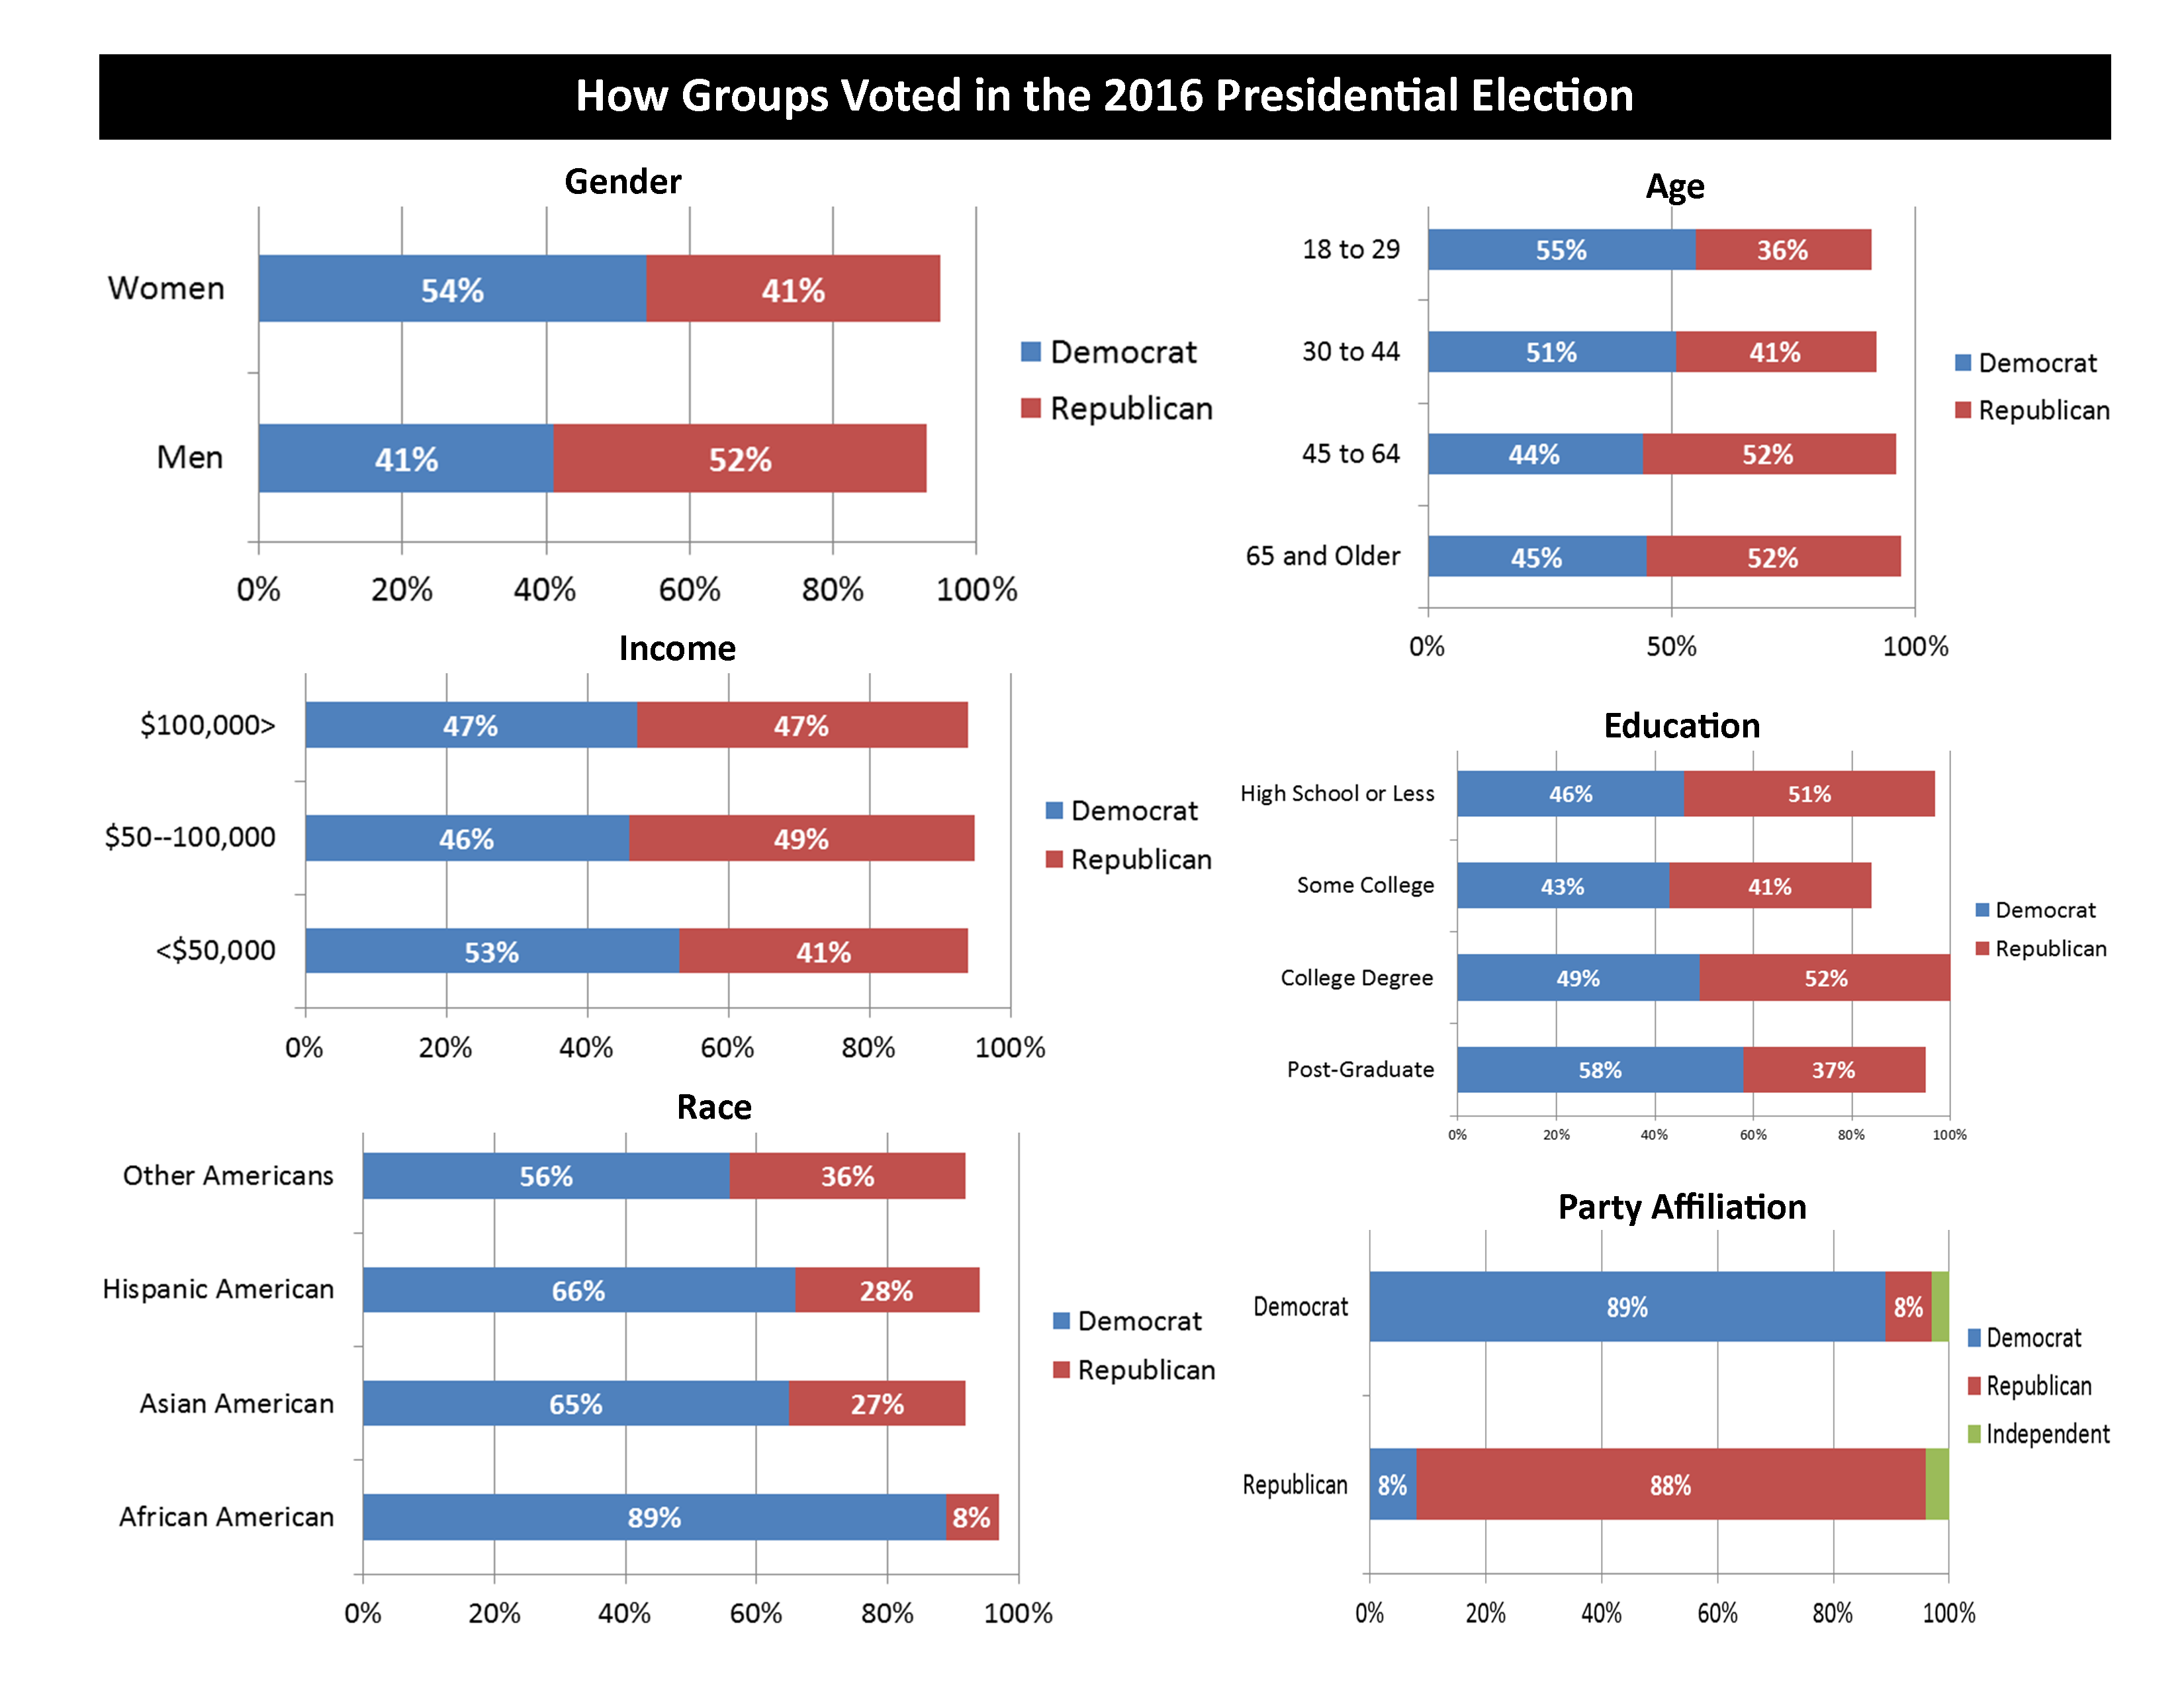 Set of bar graphs illustrating how various groups voted in the 2016 election including breakouts for gender, income, race, age, education, and party affiliation.